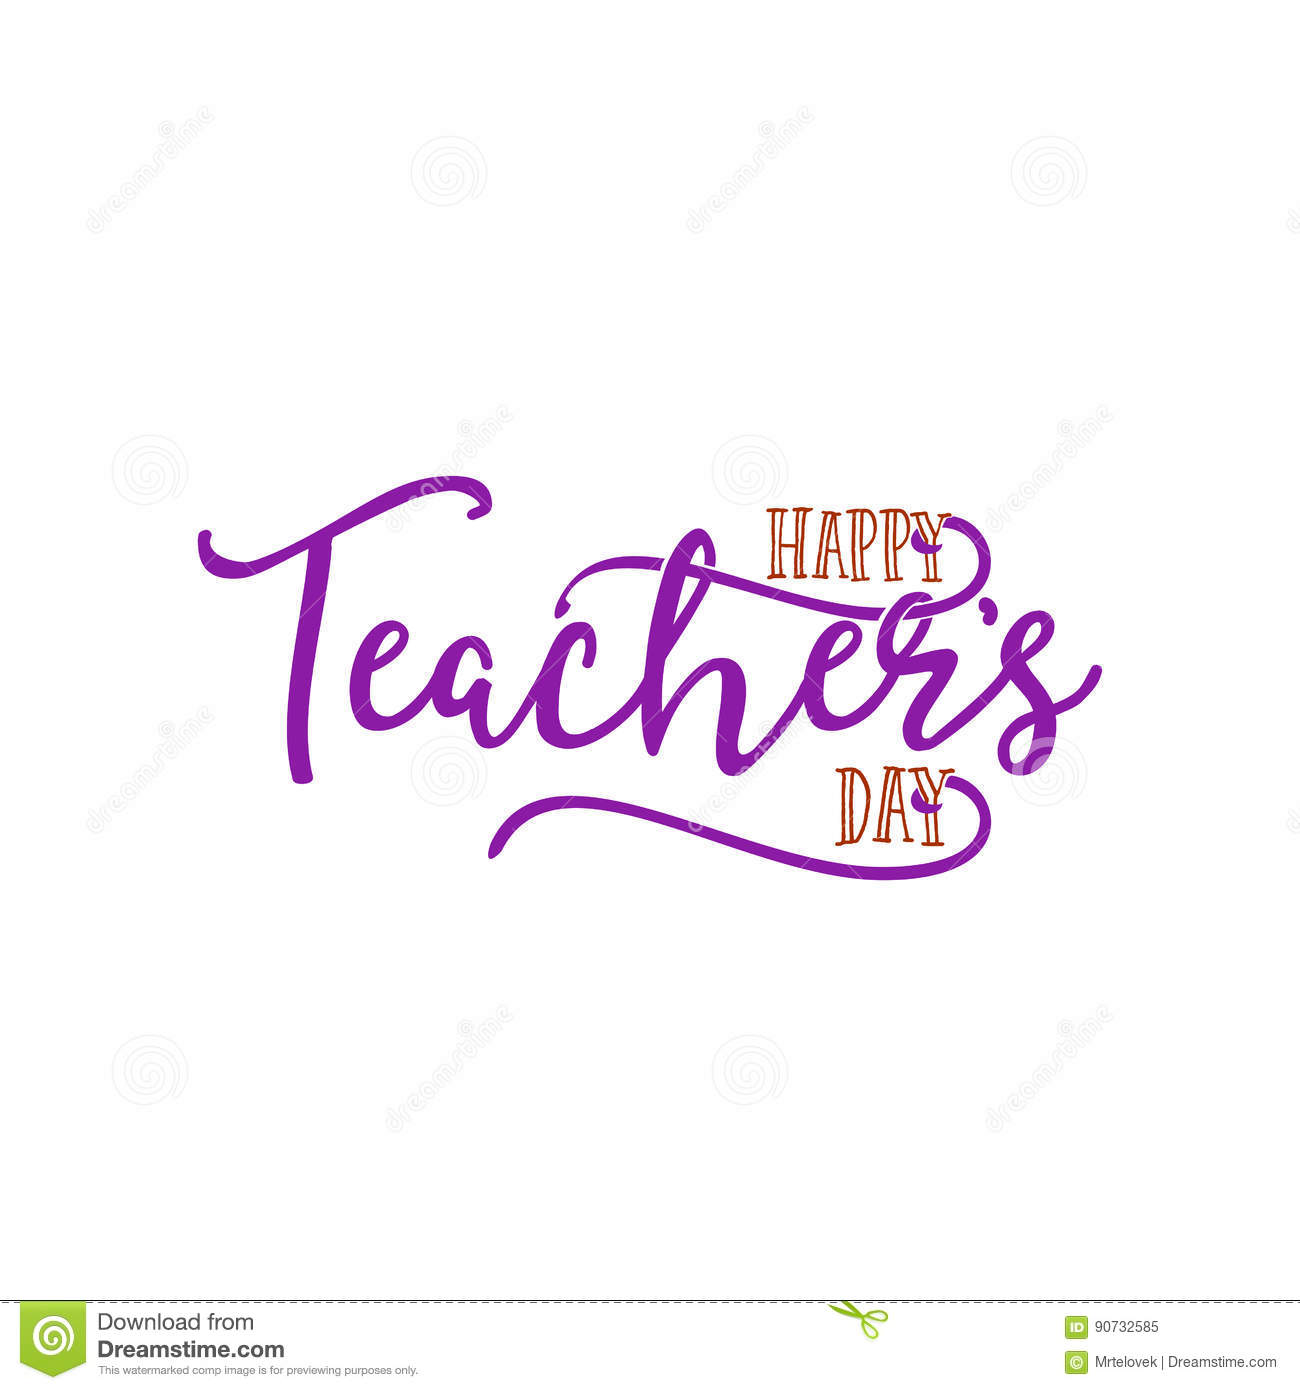 Lettering And Calligraphy Modern - Happy Teachers Day To You